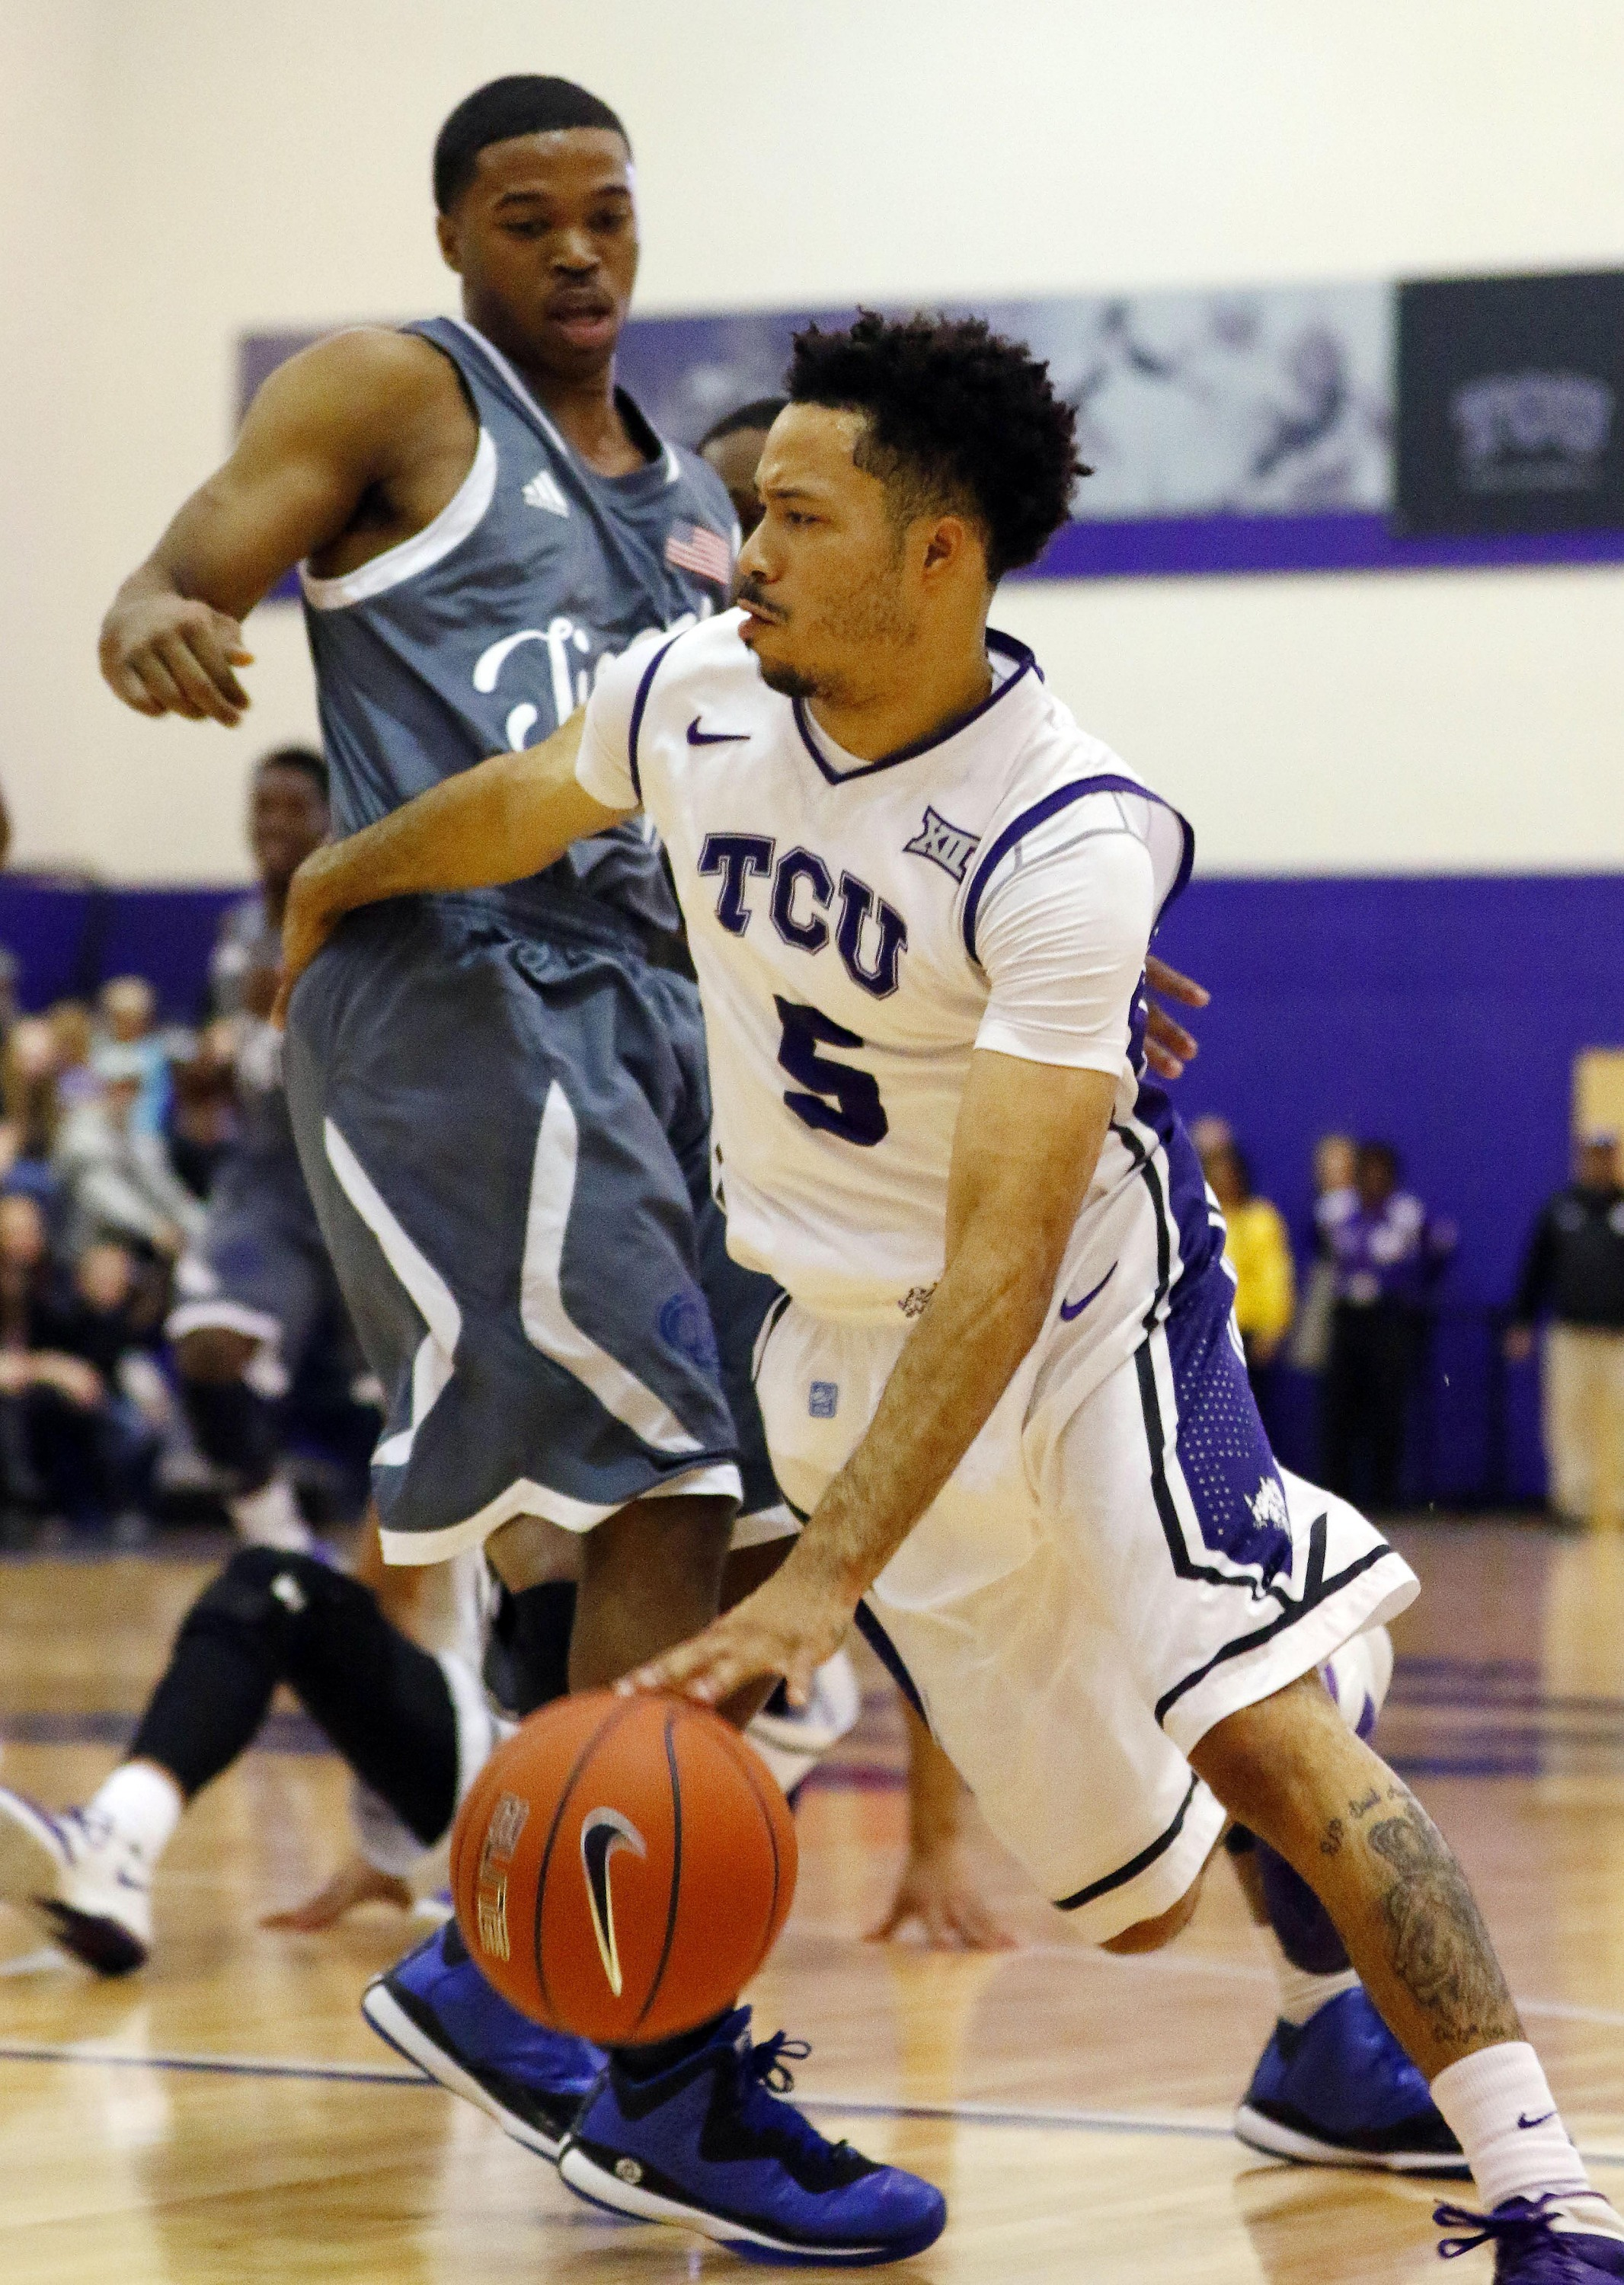 on sale 68e78 30231 TCU Derails Tennessee State, 60-40 - TCU Athletics